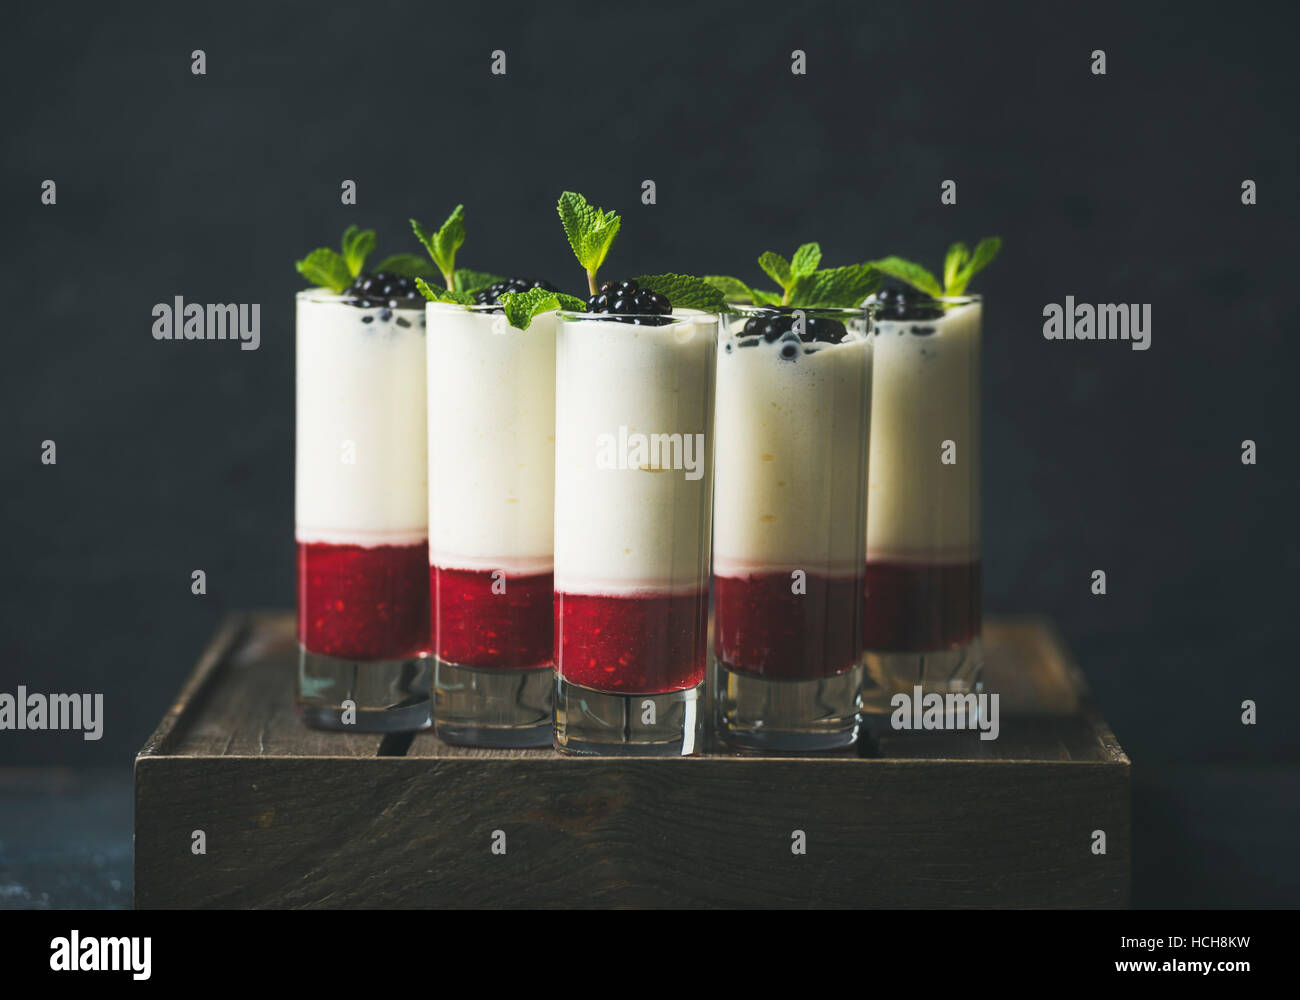 Catering, banquet or party food concept. Dessert in glass with blackberries and mint leaves over dark background - Stock Image